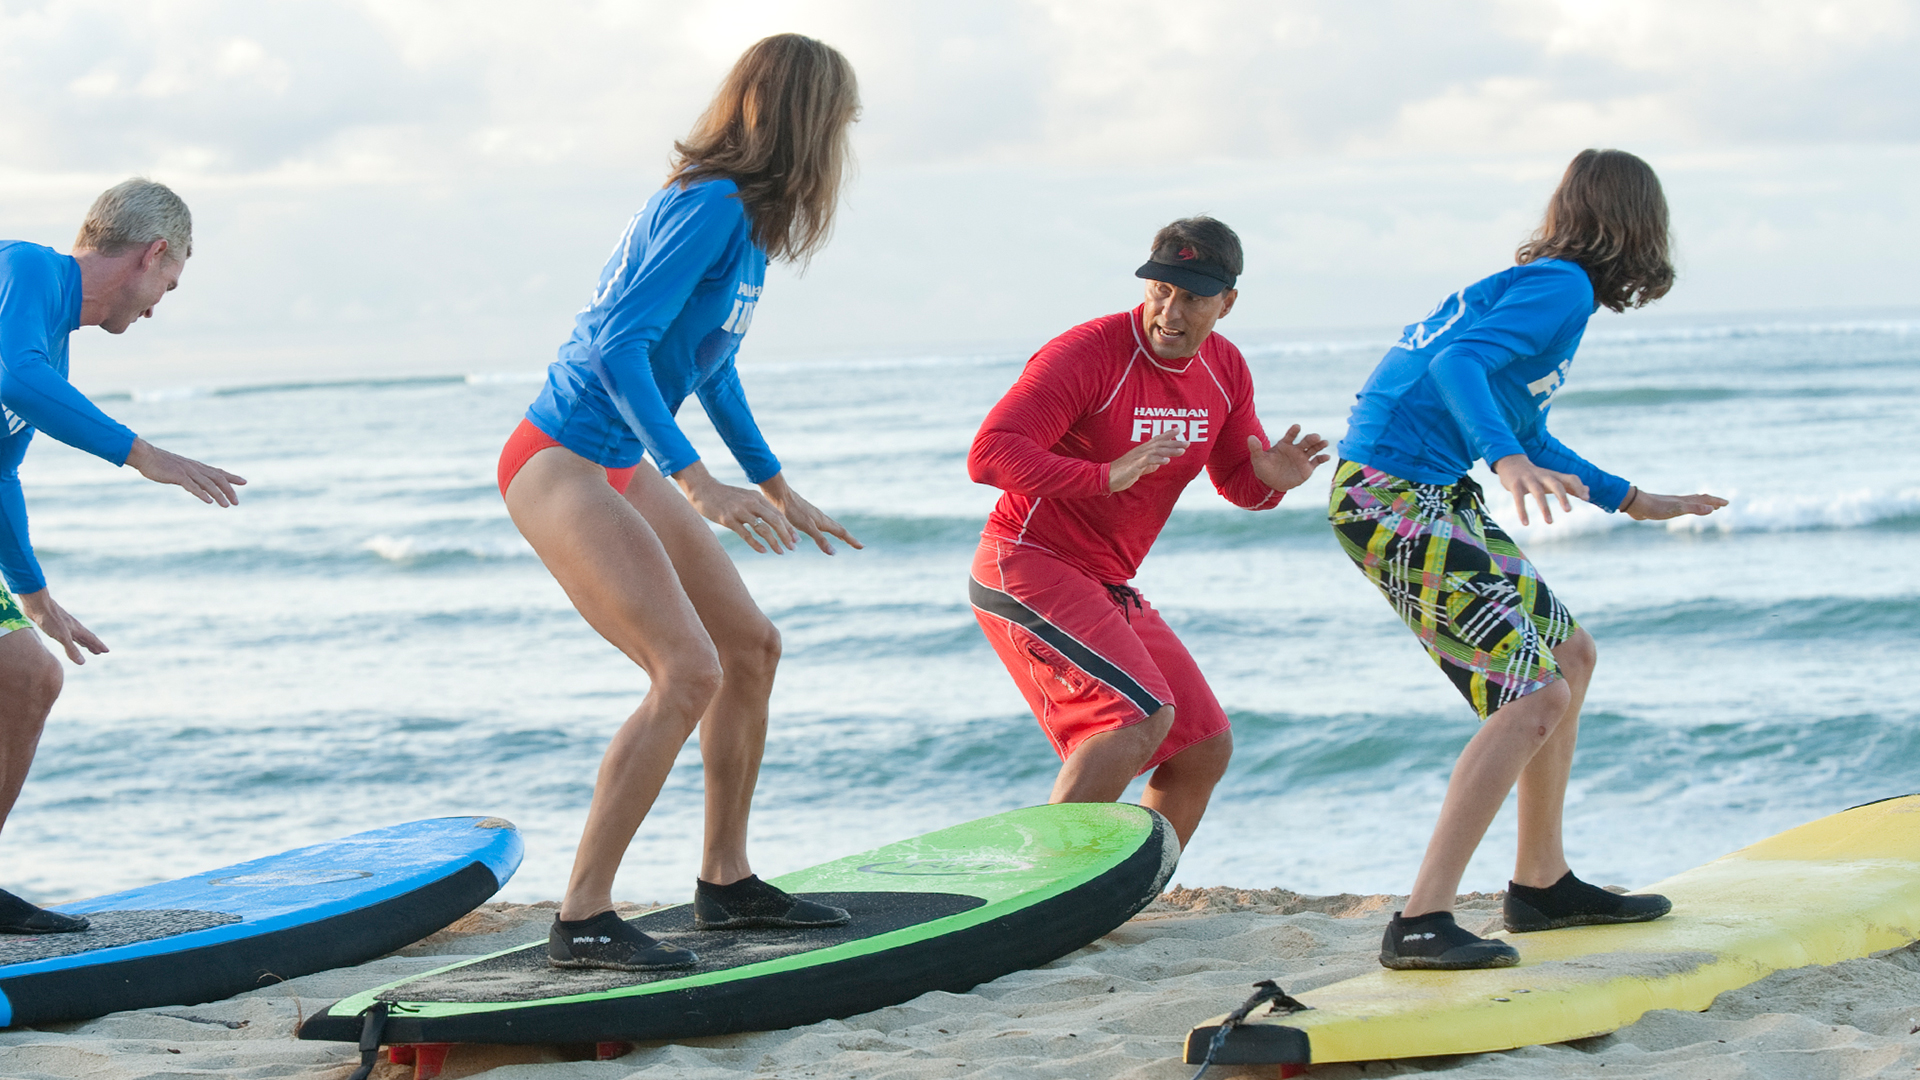 Teens taking surfing lesson | Sheknows.com